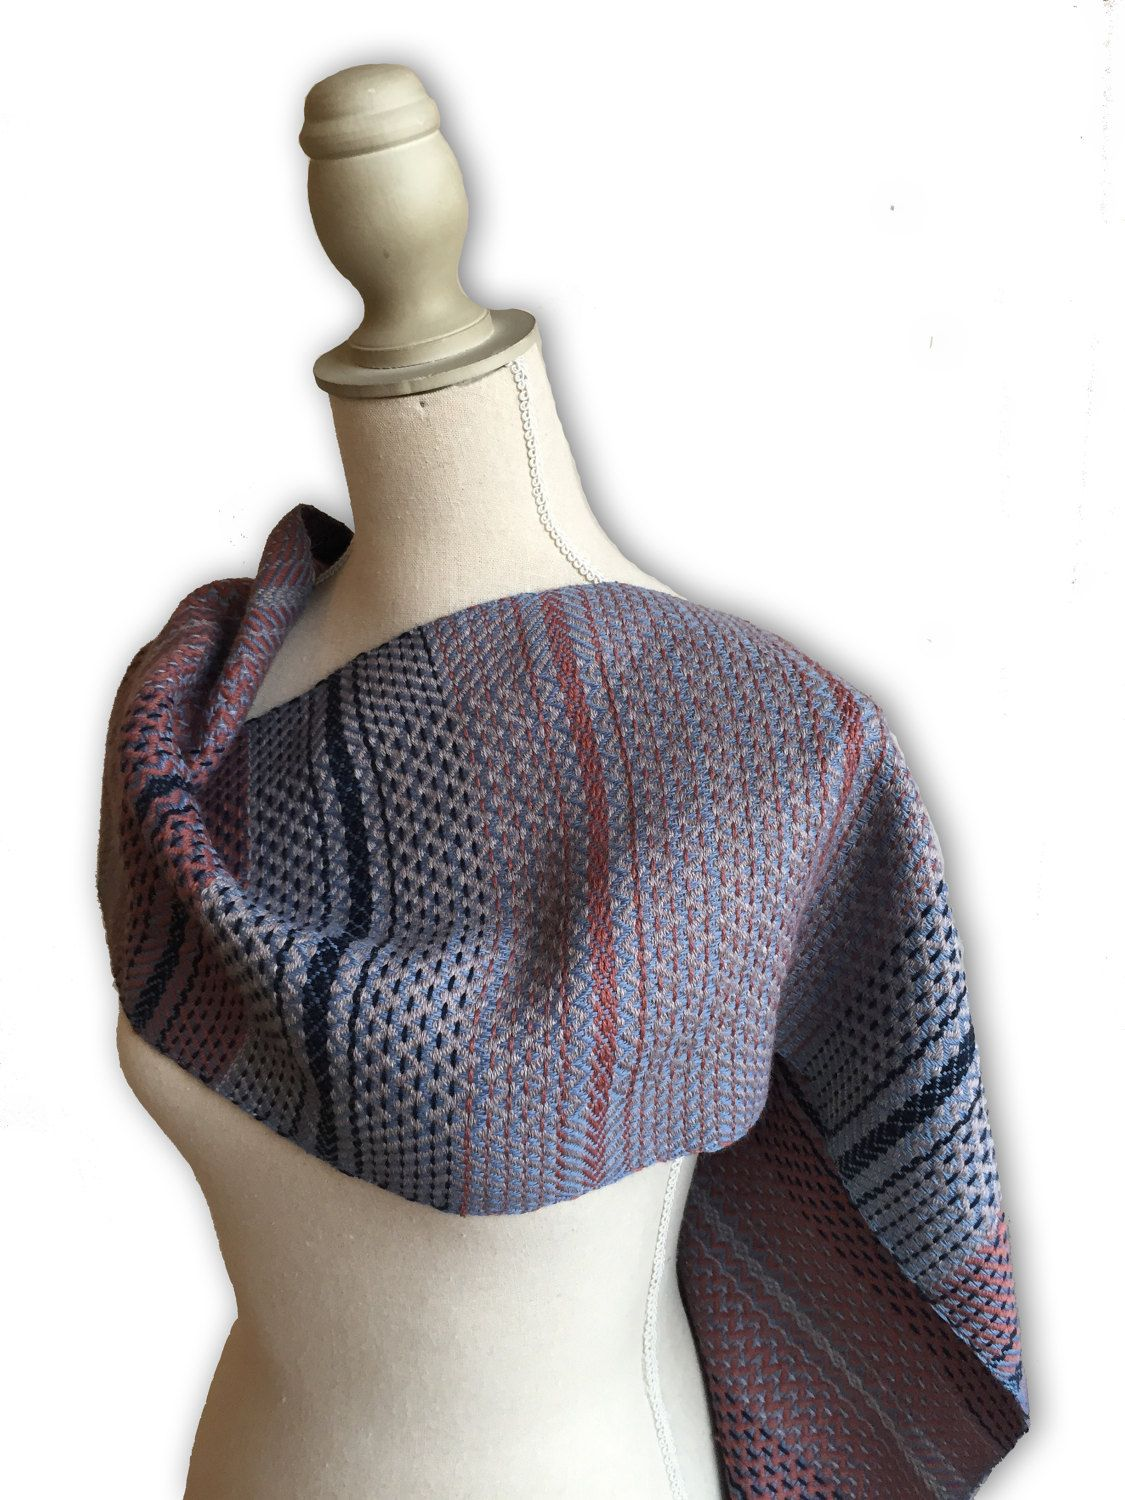 Hand woven scarf, unique scarf, women's scarf, wool scarf, unisex scarf, gift for her, 100% wool, womens scarf, winter scarf, handwoven wrap by MariannaNelloTextile on Etsy  #textiledesign #handwoven #scarf #patterndesign